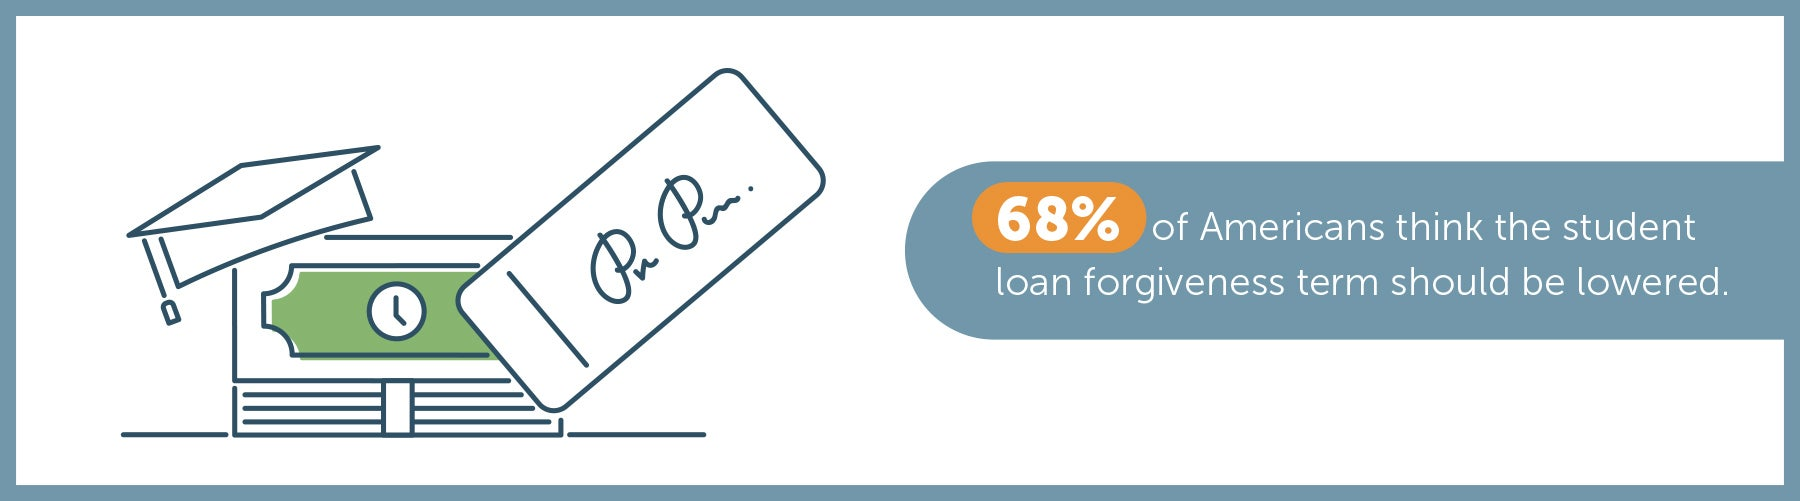 68% of Americans think the student loan forgiveness term should be lowered